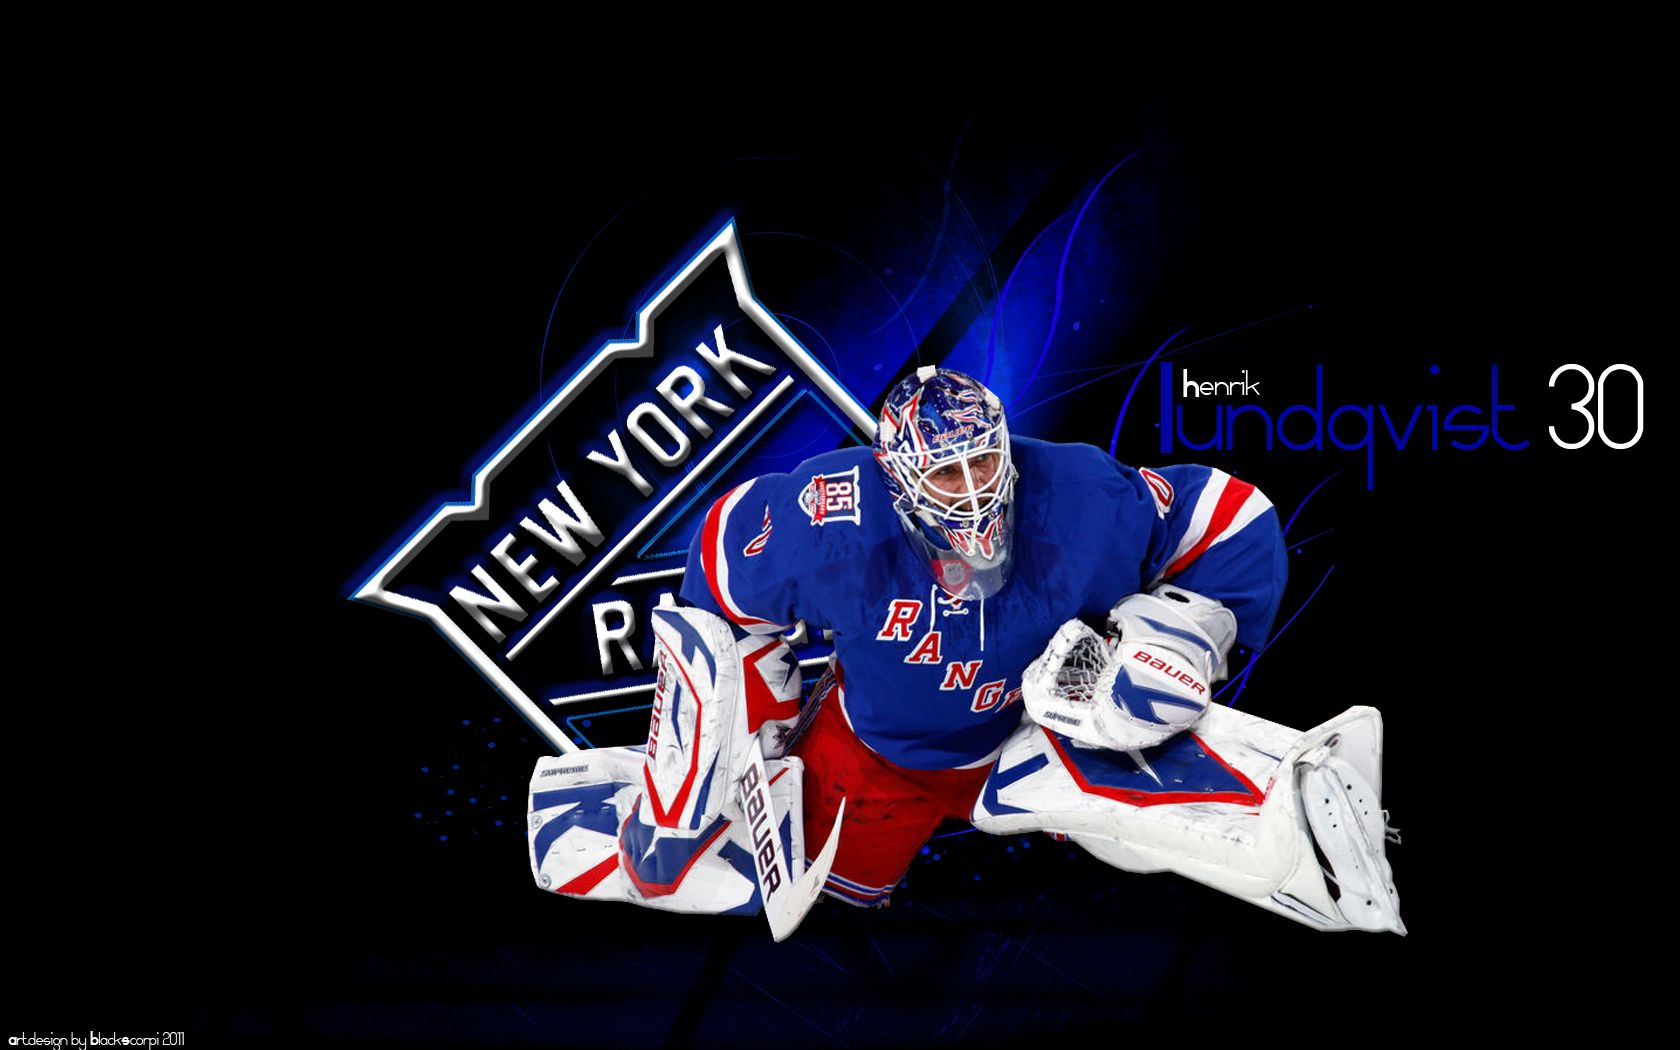 Henrik Lundqvist All New York Rangers New York Rangers York